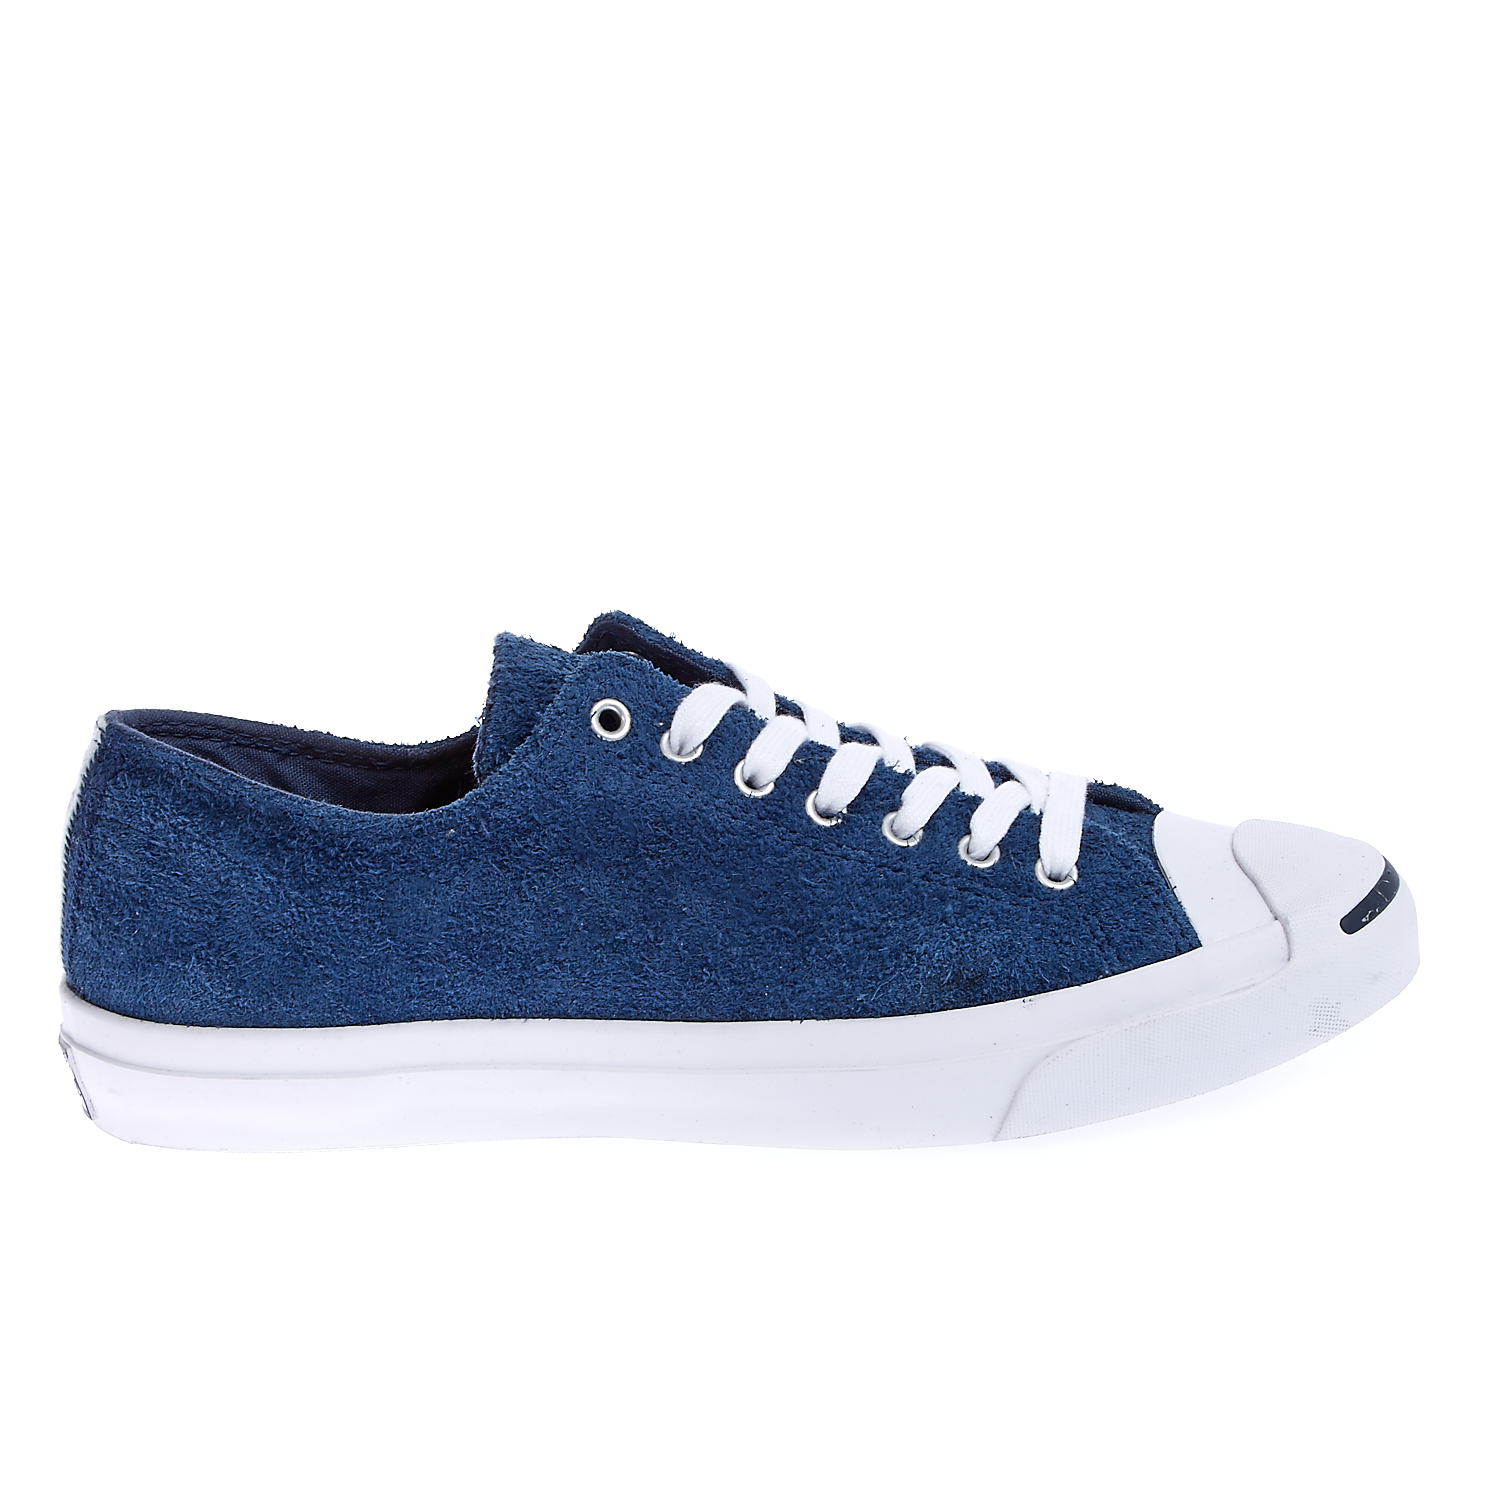 CONVERSE – Ανδρικά παπούτσια Jack Purcell Signature Ox μπλε